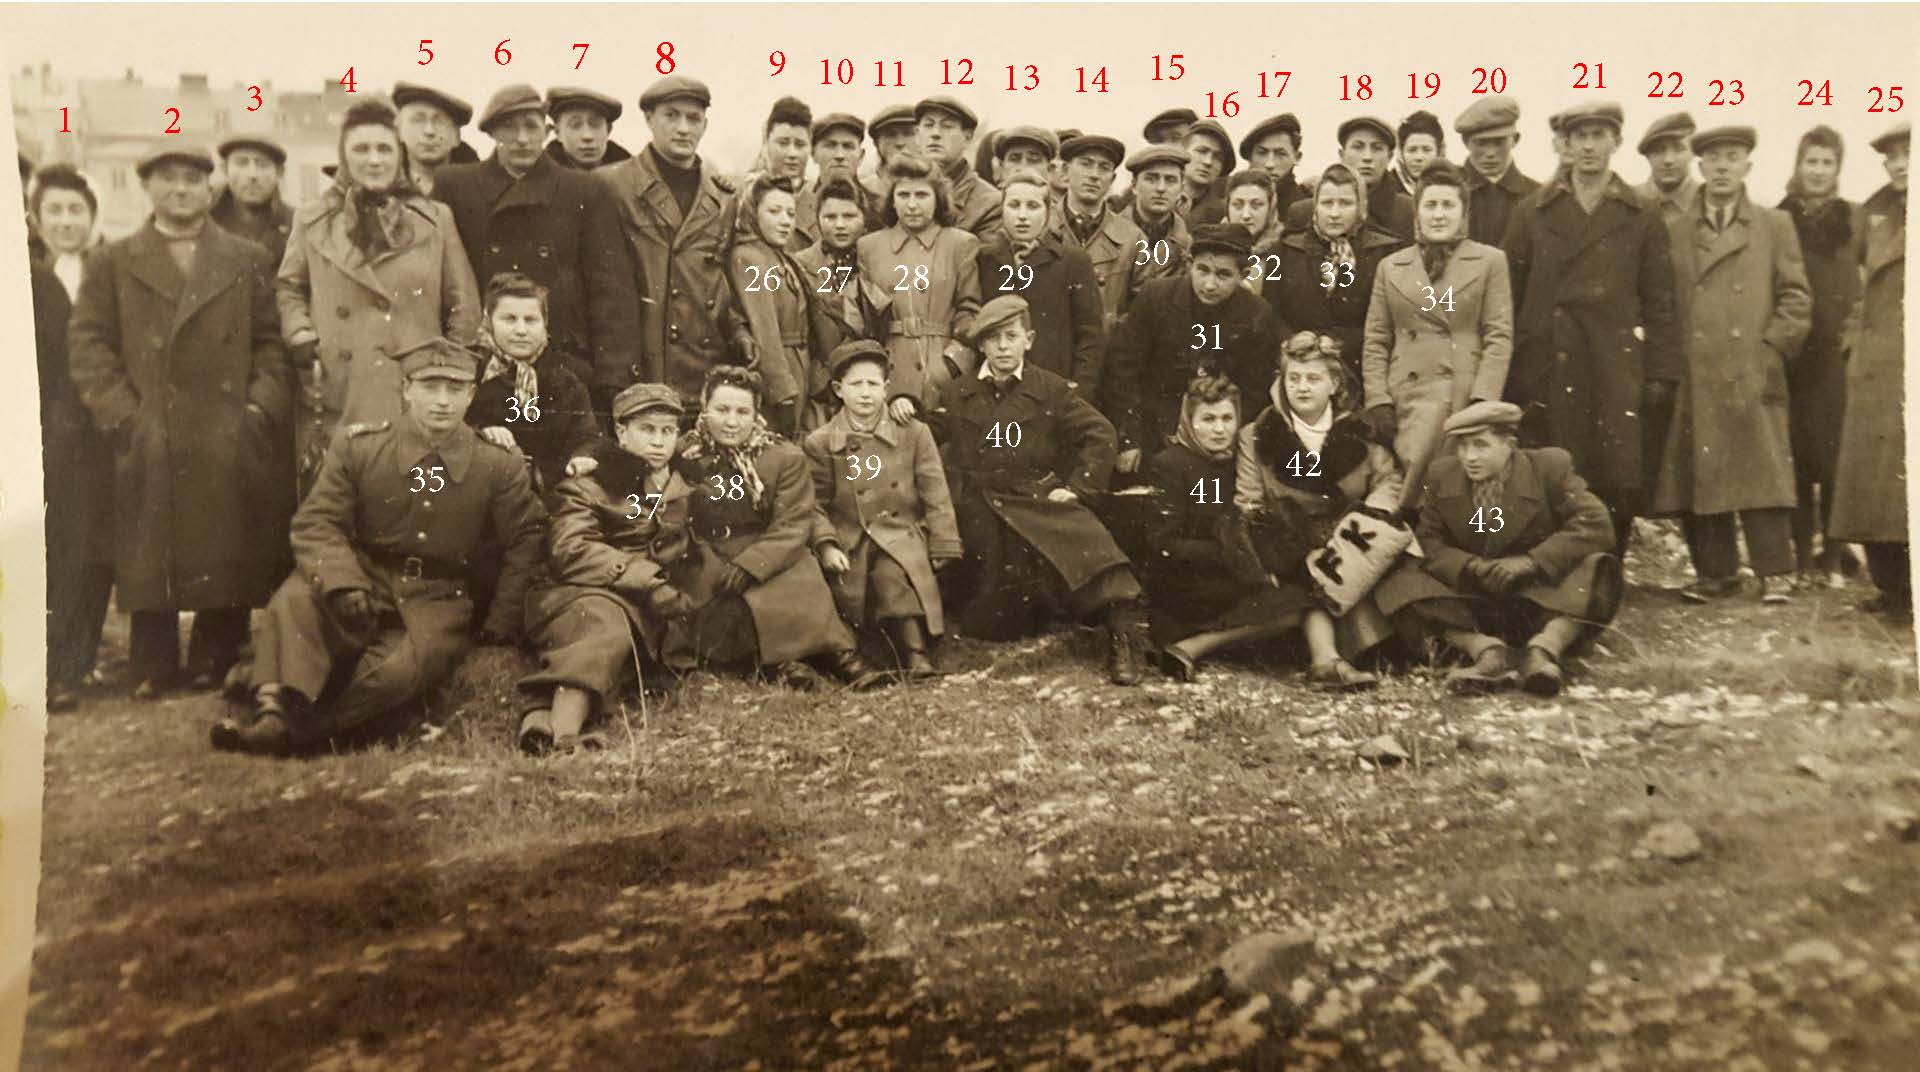 ostrowiec 1945 gathering numbered